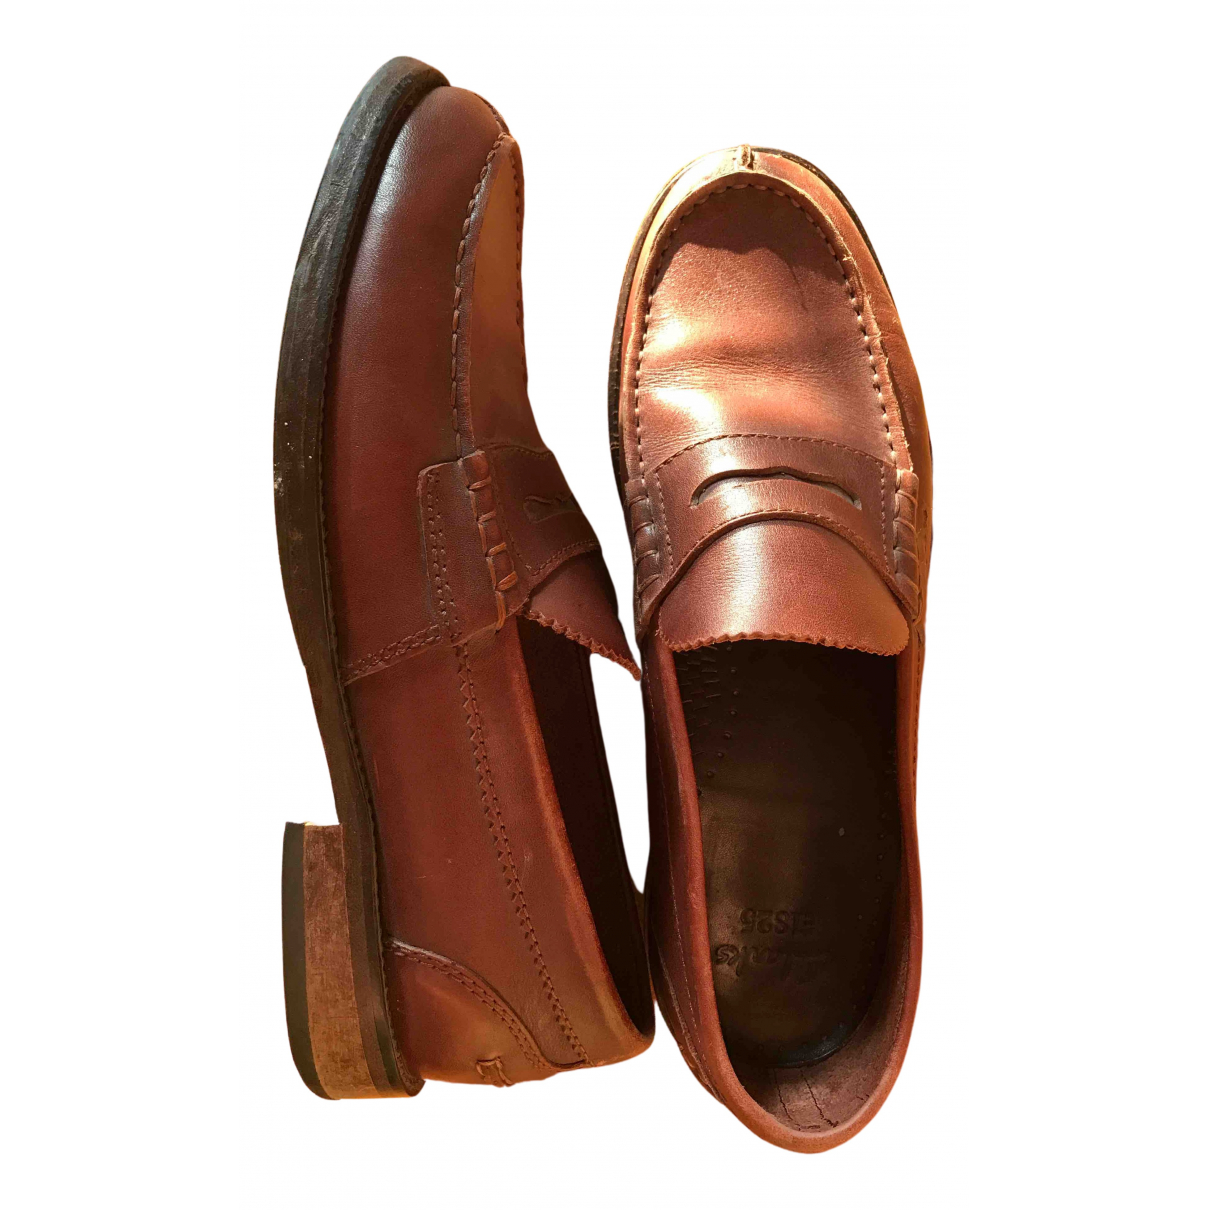 Clarks N Brown Leather Flats for Men 9 US